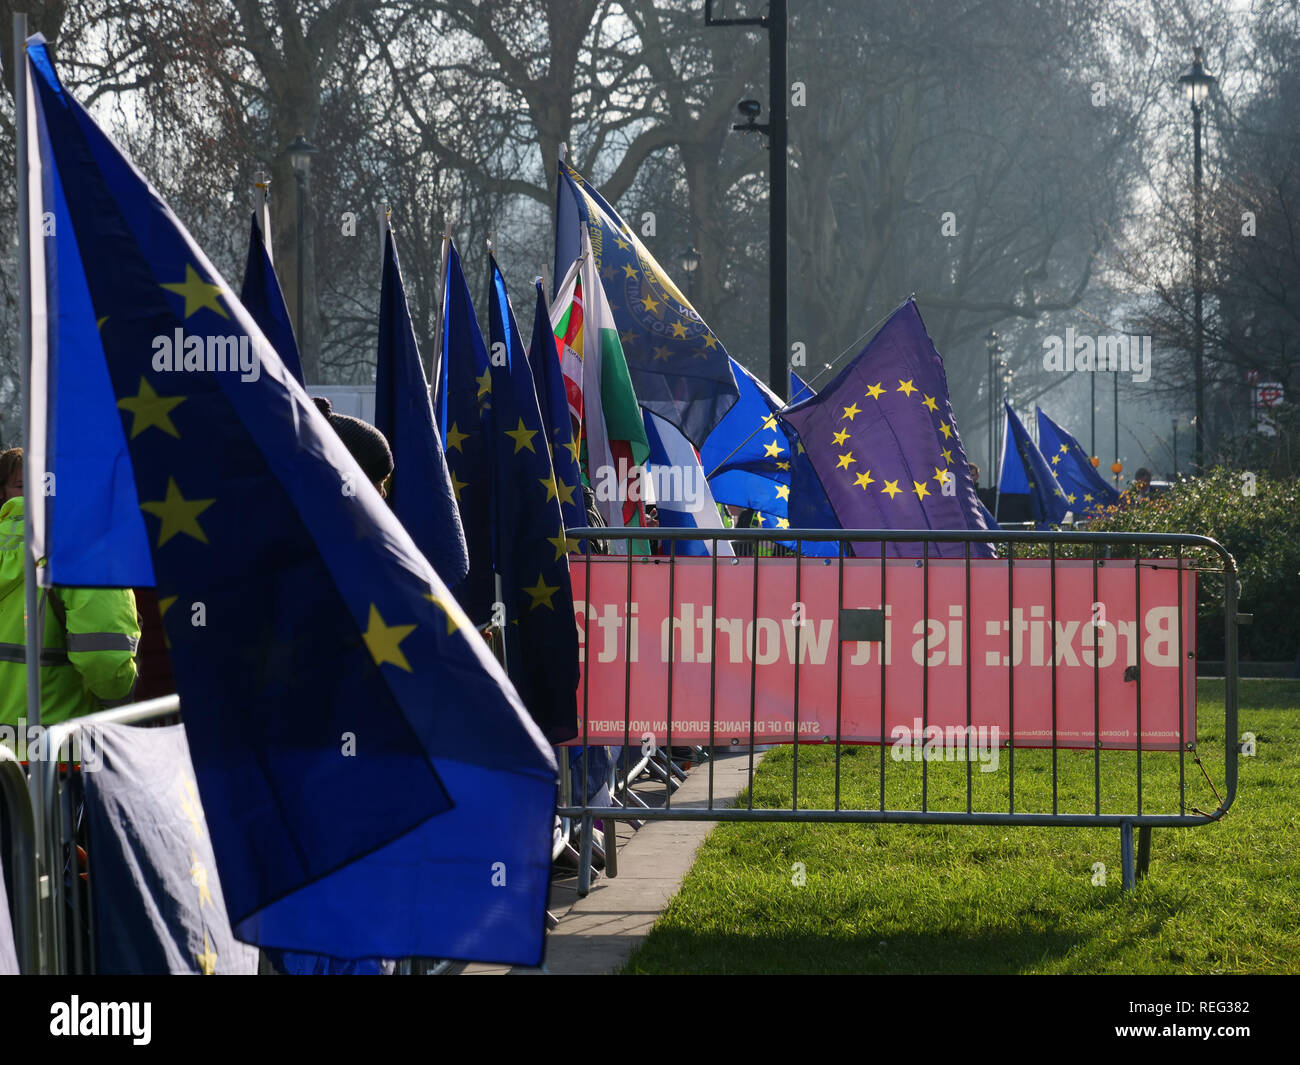 London, UK. 21th January, 2019. European Union flags in support of remaining inside EU around the Houses of Parliament today. Credit: Joe Kuis / Alamy Live News - Stock Image